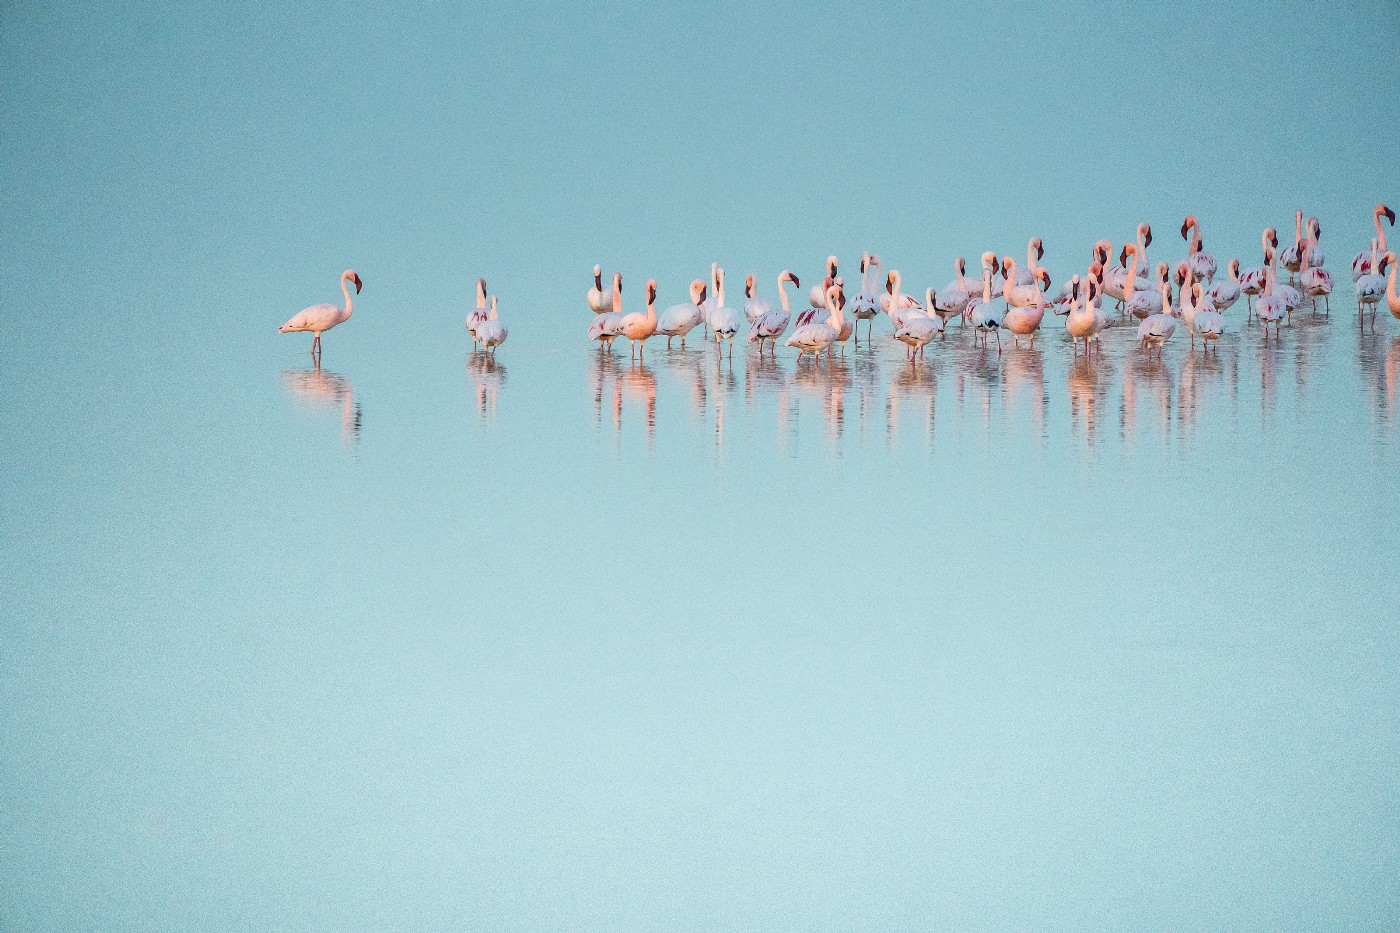 A flamboyance of flamingoes in a lake